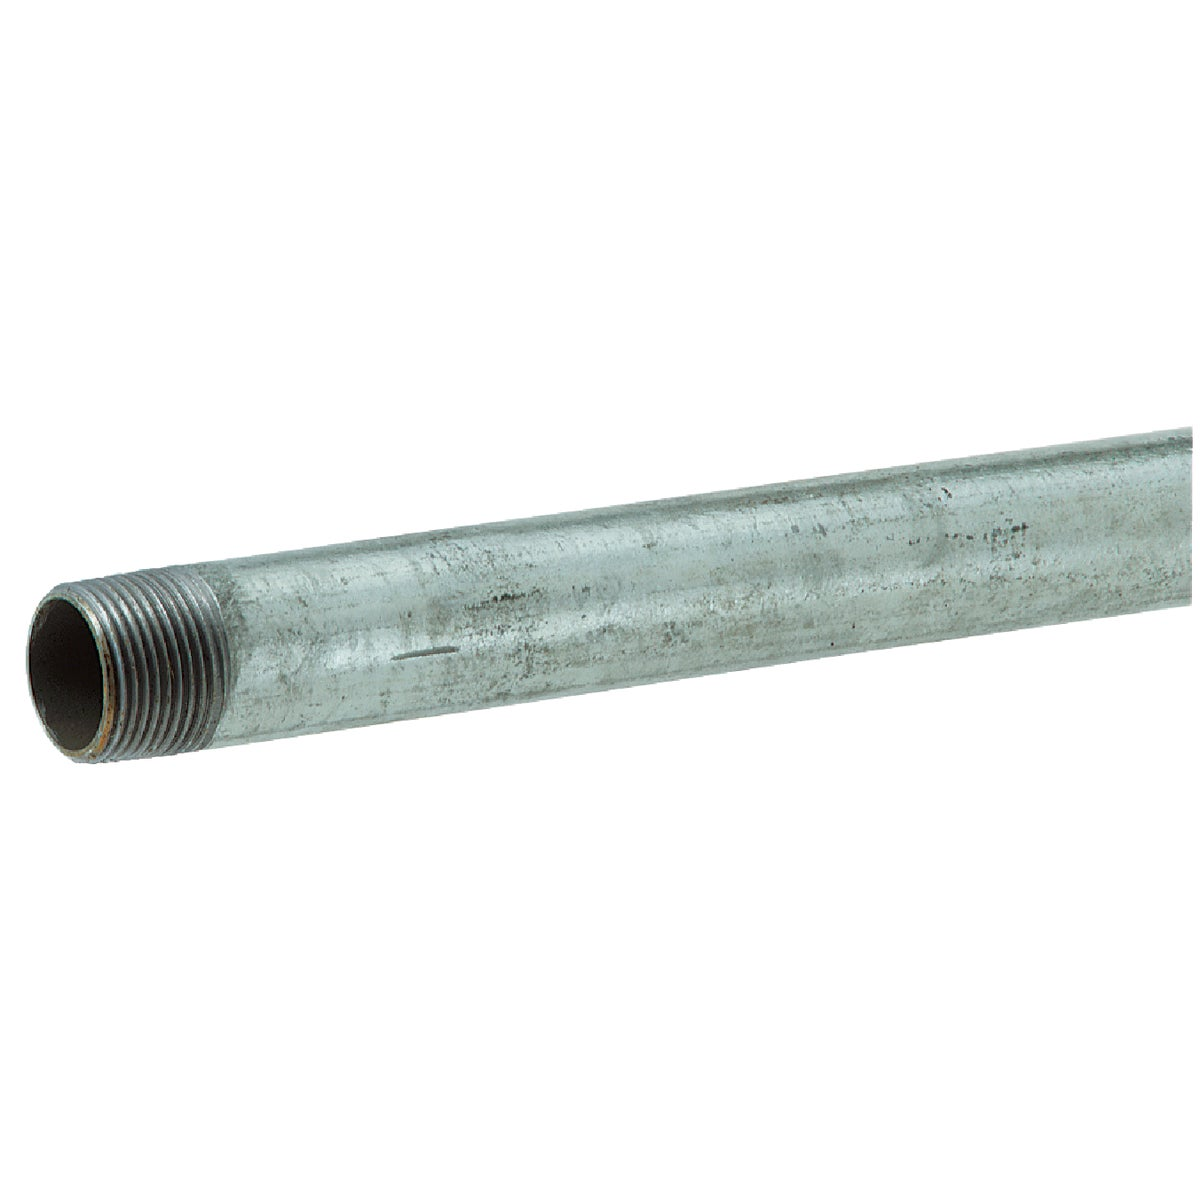 1-1/4X18GALV RDI-CT PIPE - 11/4X18 by Southland Pipe Nippl